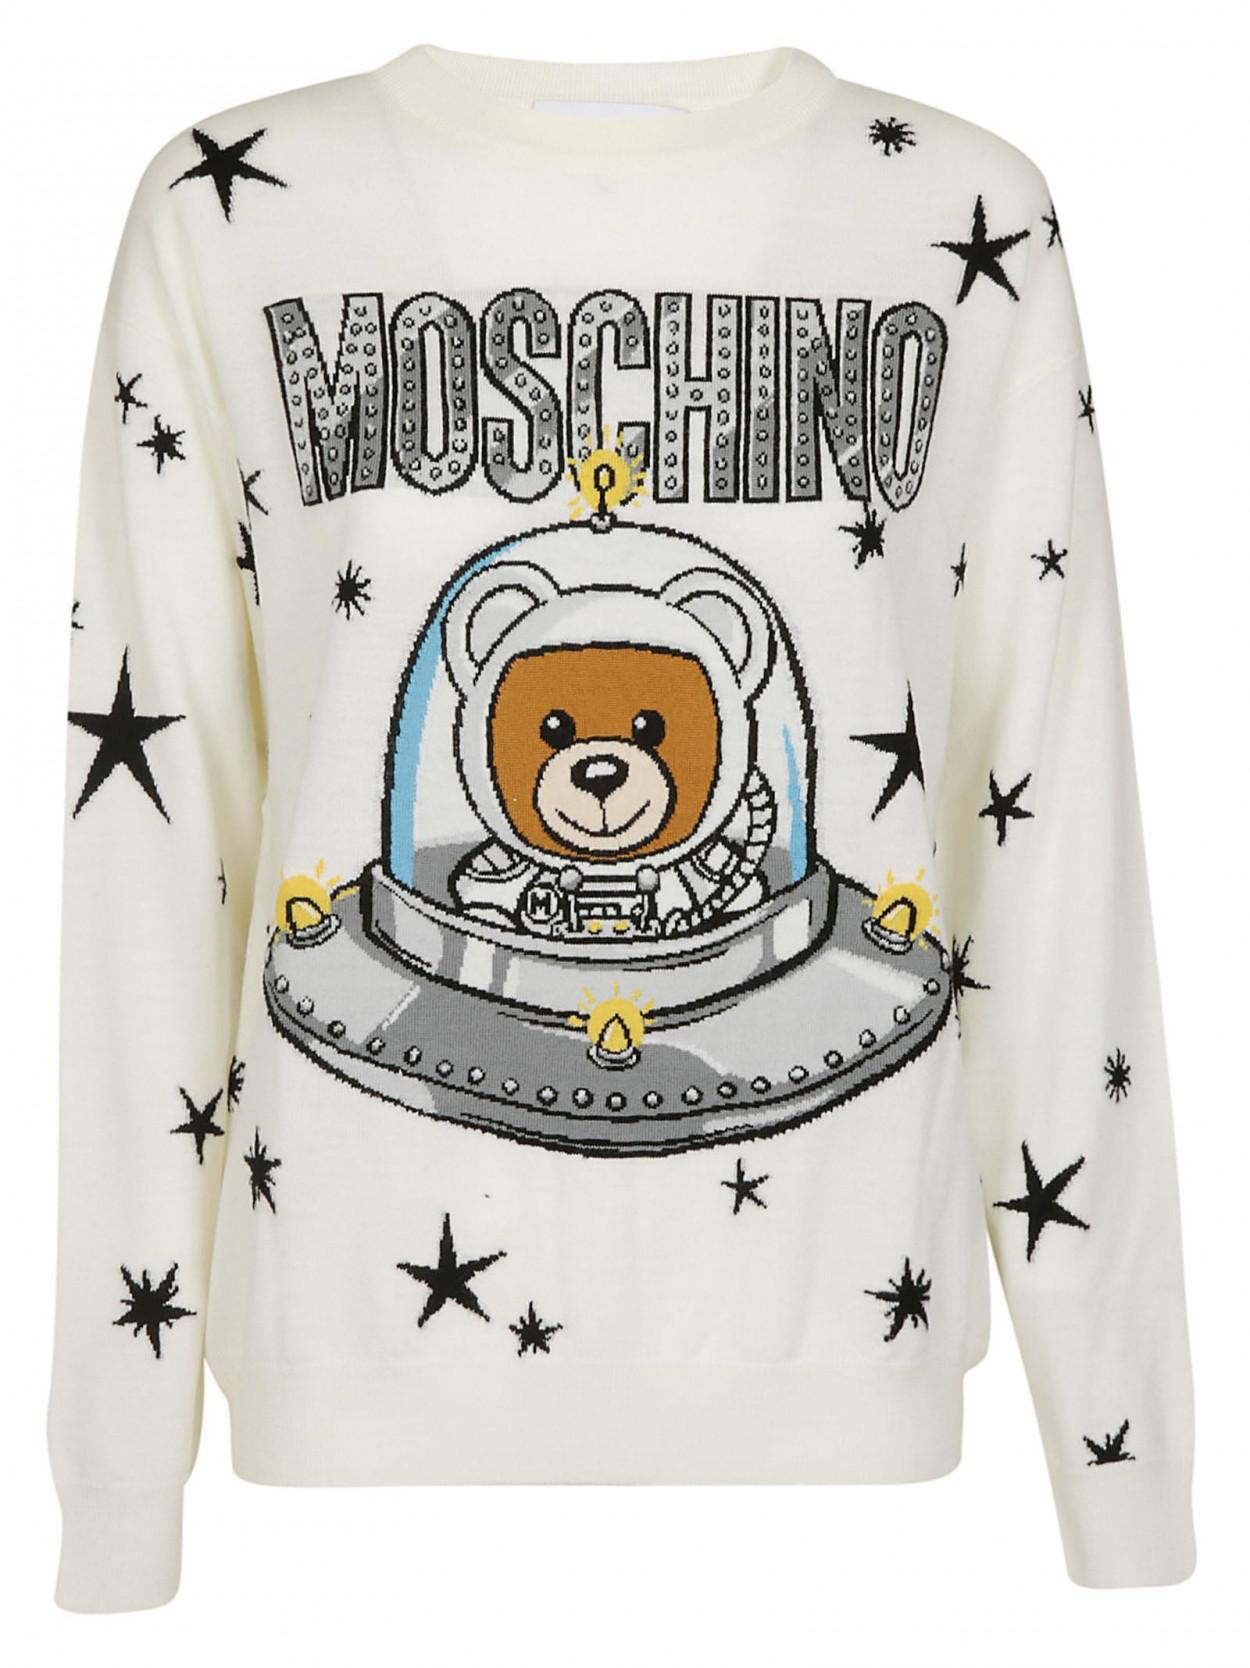 7144a5bfd1 Moschino MOSCHINO MAGLIA ORSO BIANCA in White - Lyst